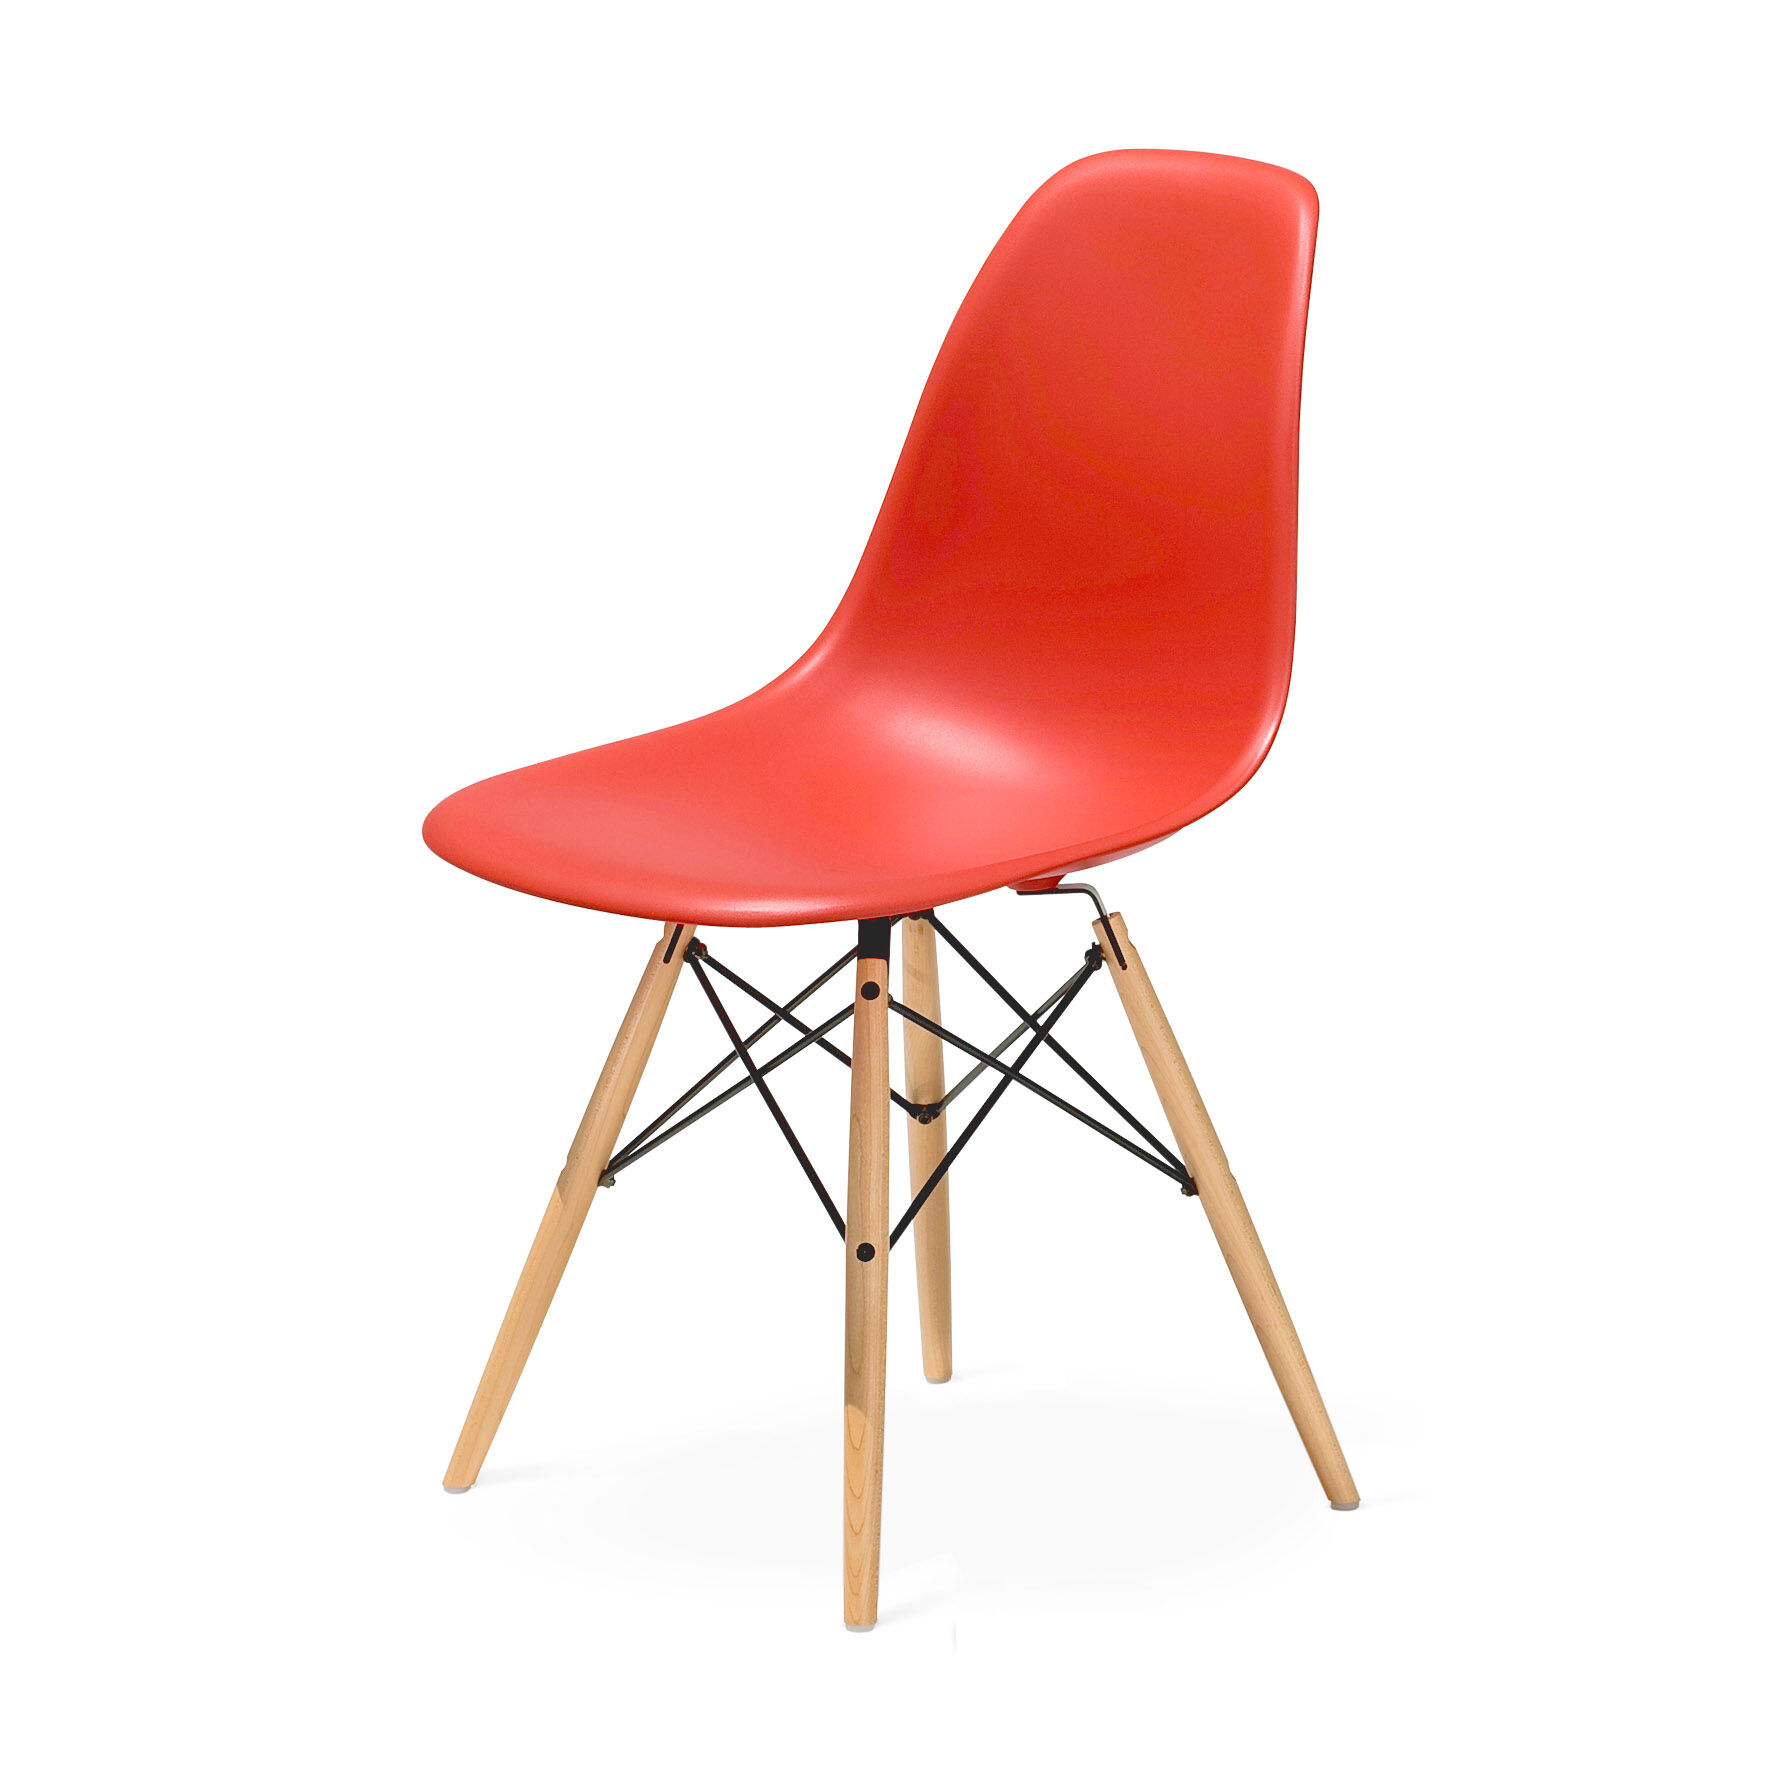 Eames Molded Plastic Side Chair with Dowel MoMA Design Store